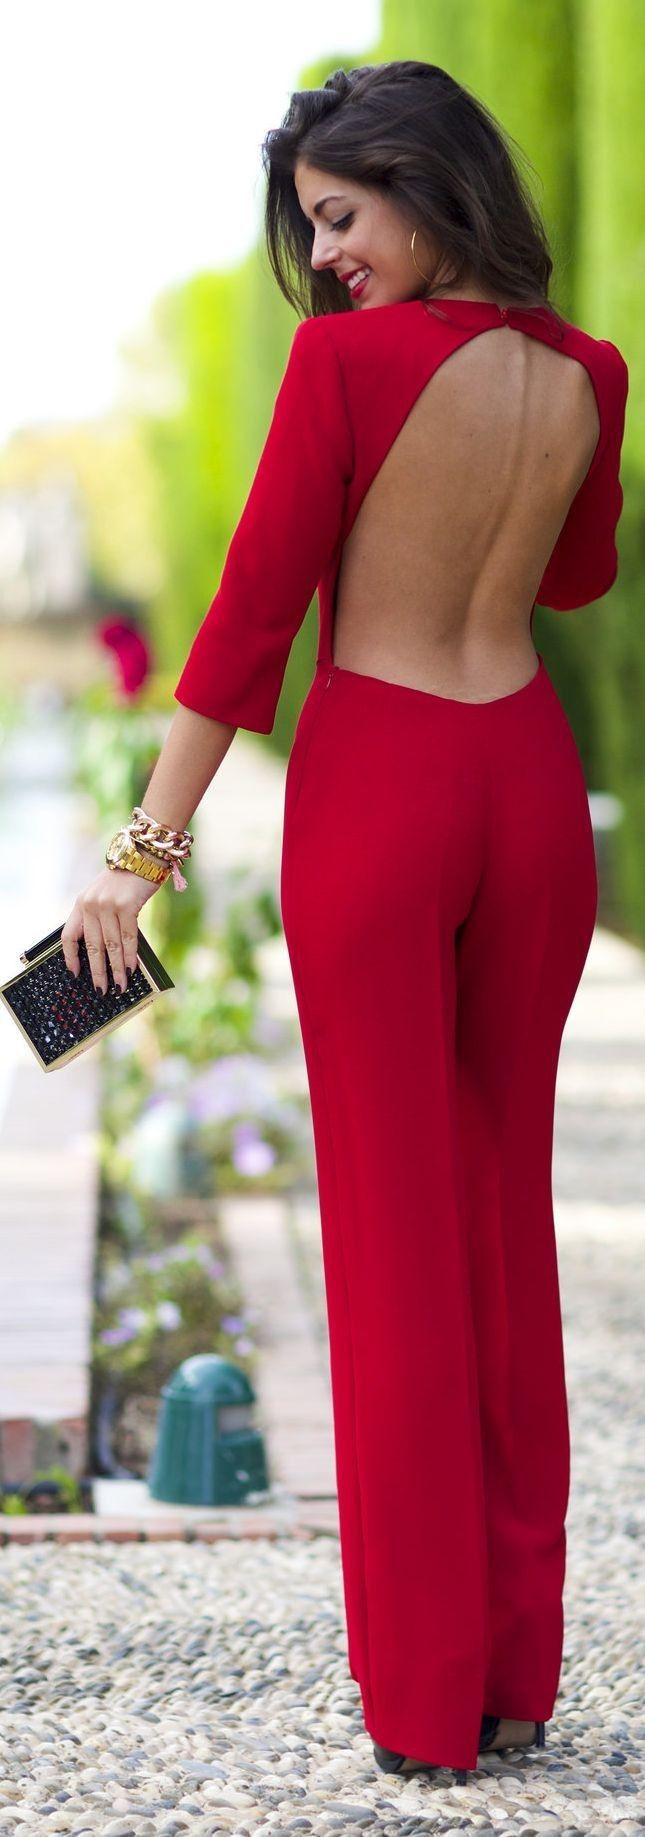 trending and backless outfits to wear right now wow pinterest